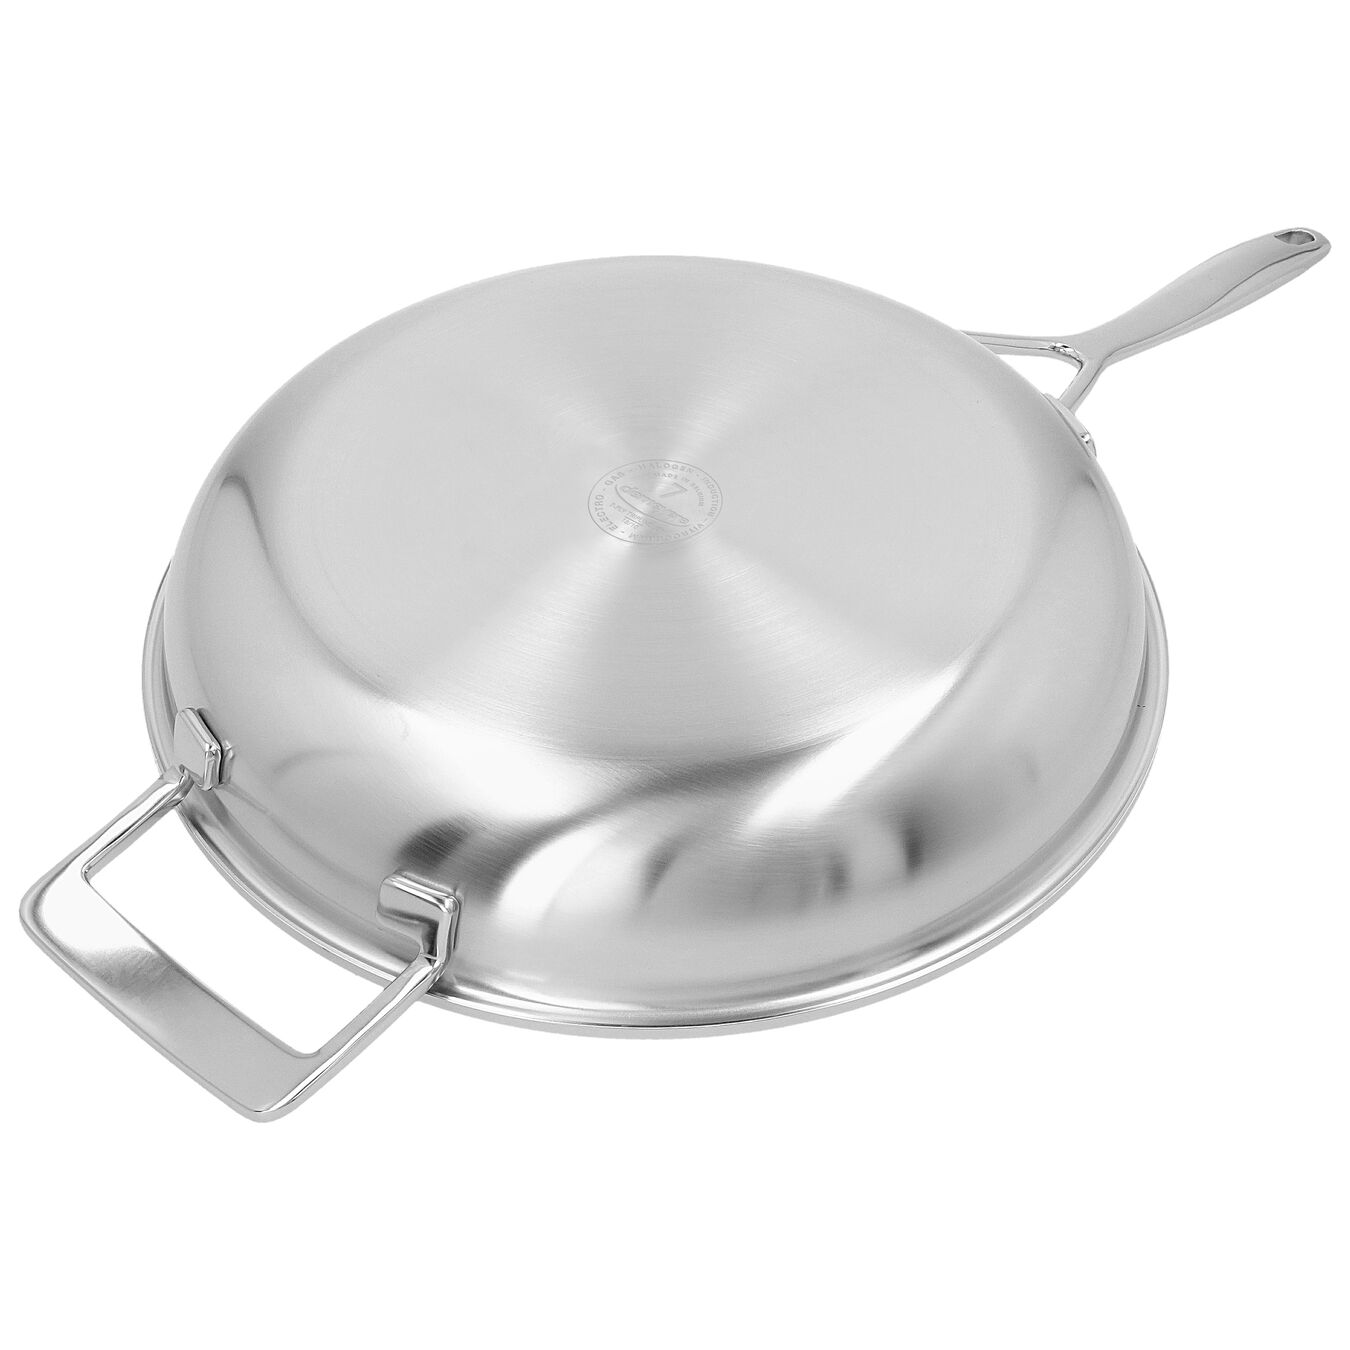 11-inch, 18/10 Stainless Steel, Non-stick, Frying pan,,large 5